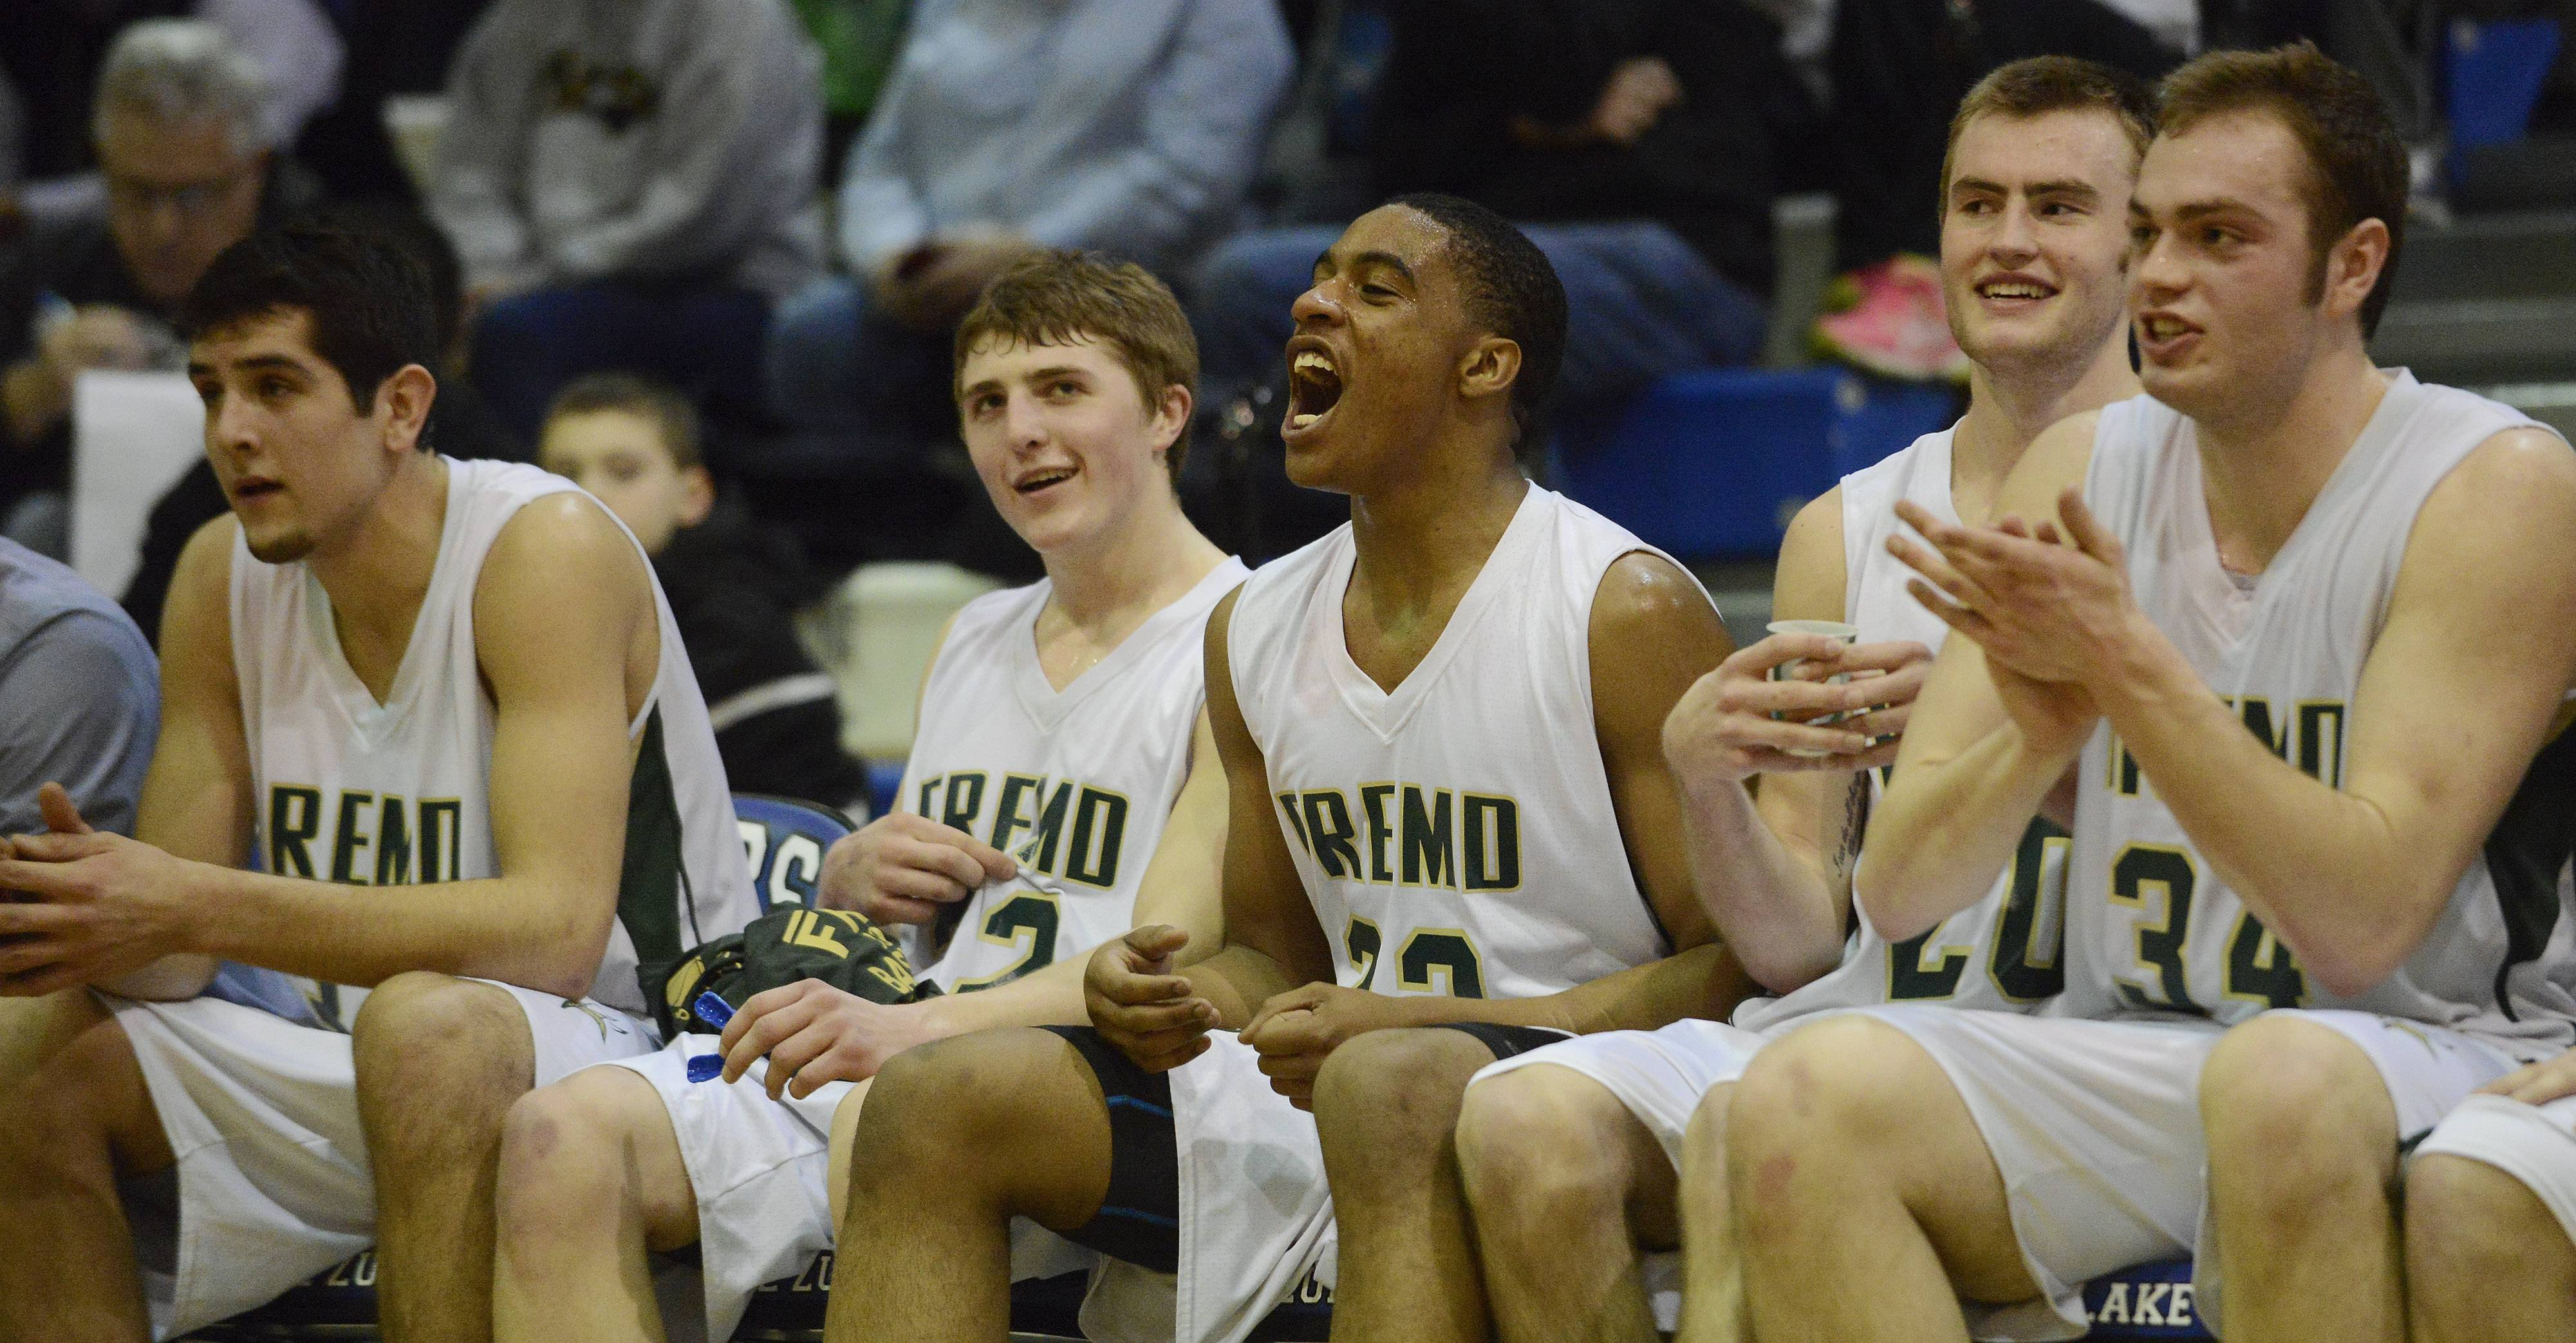 Images: Fremd vs. Highland Park boys basketball